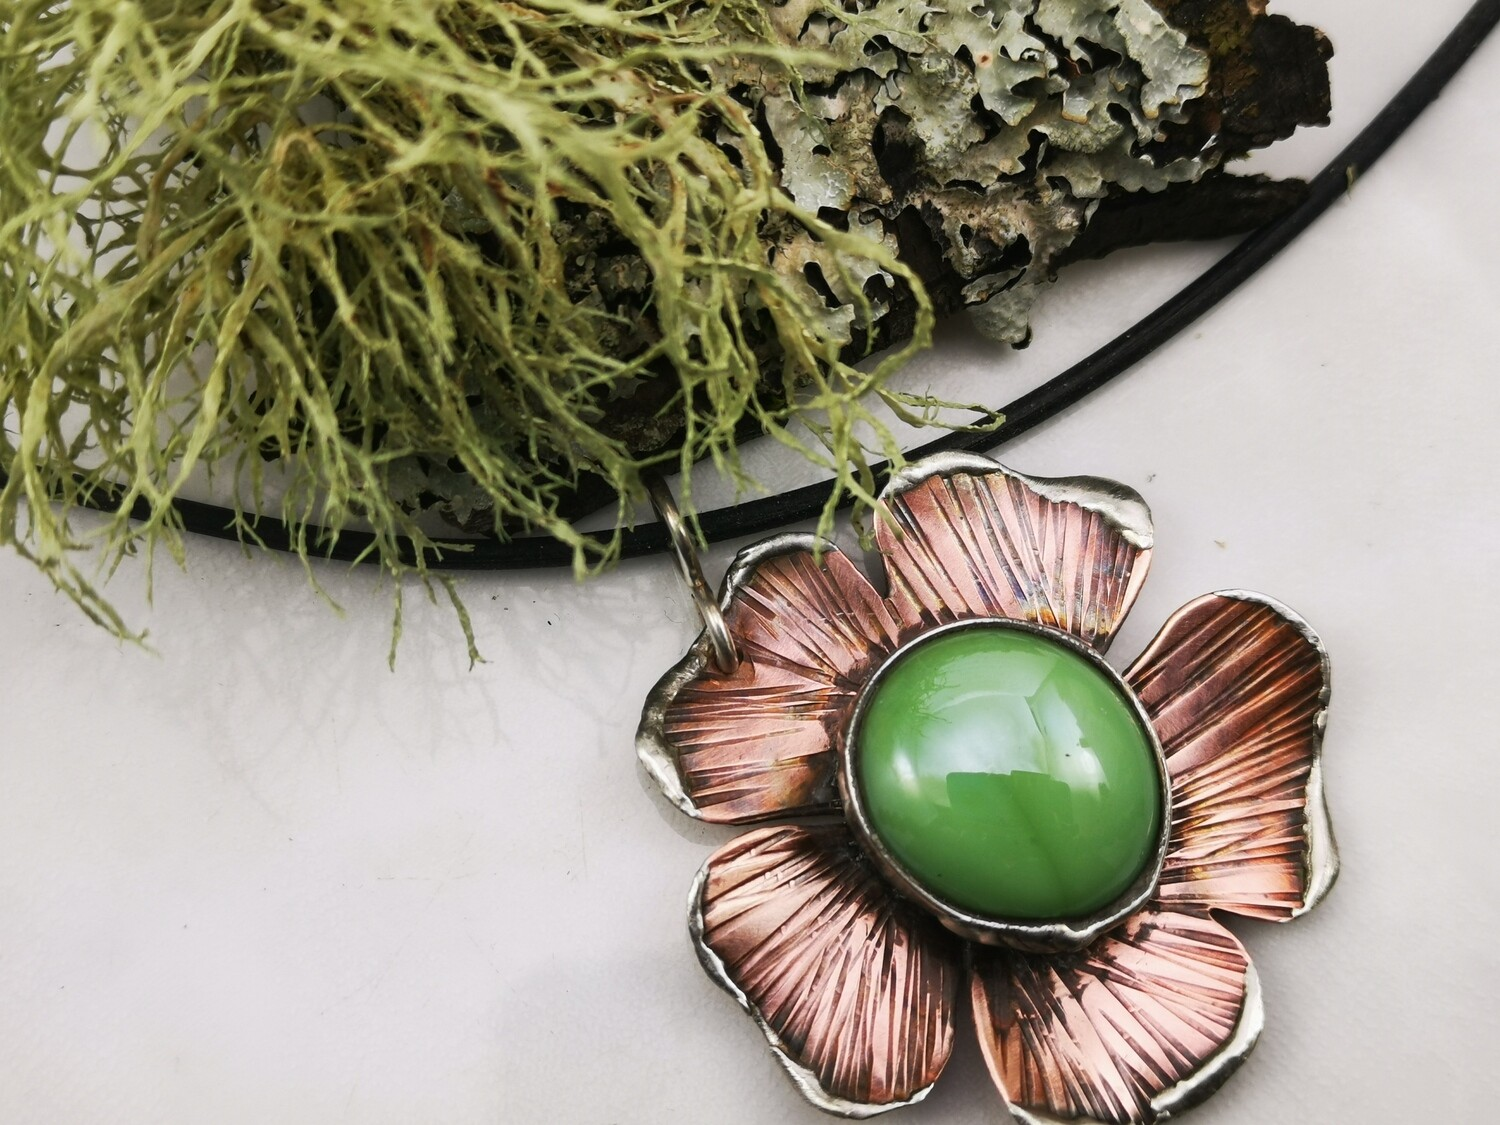 Rustic Earthy Organic Mixed Metal Hammer Textured Flower Pendant Necklace with Bezel Set Olive Green Glass Cabochon